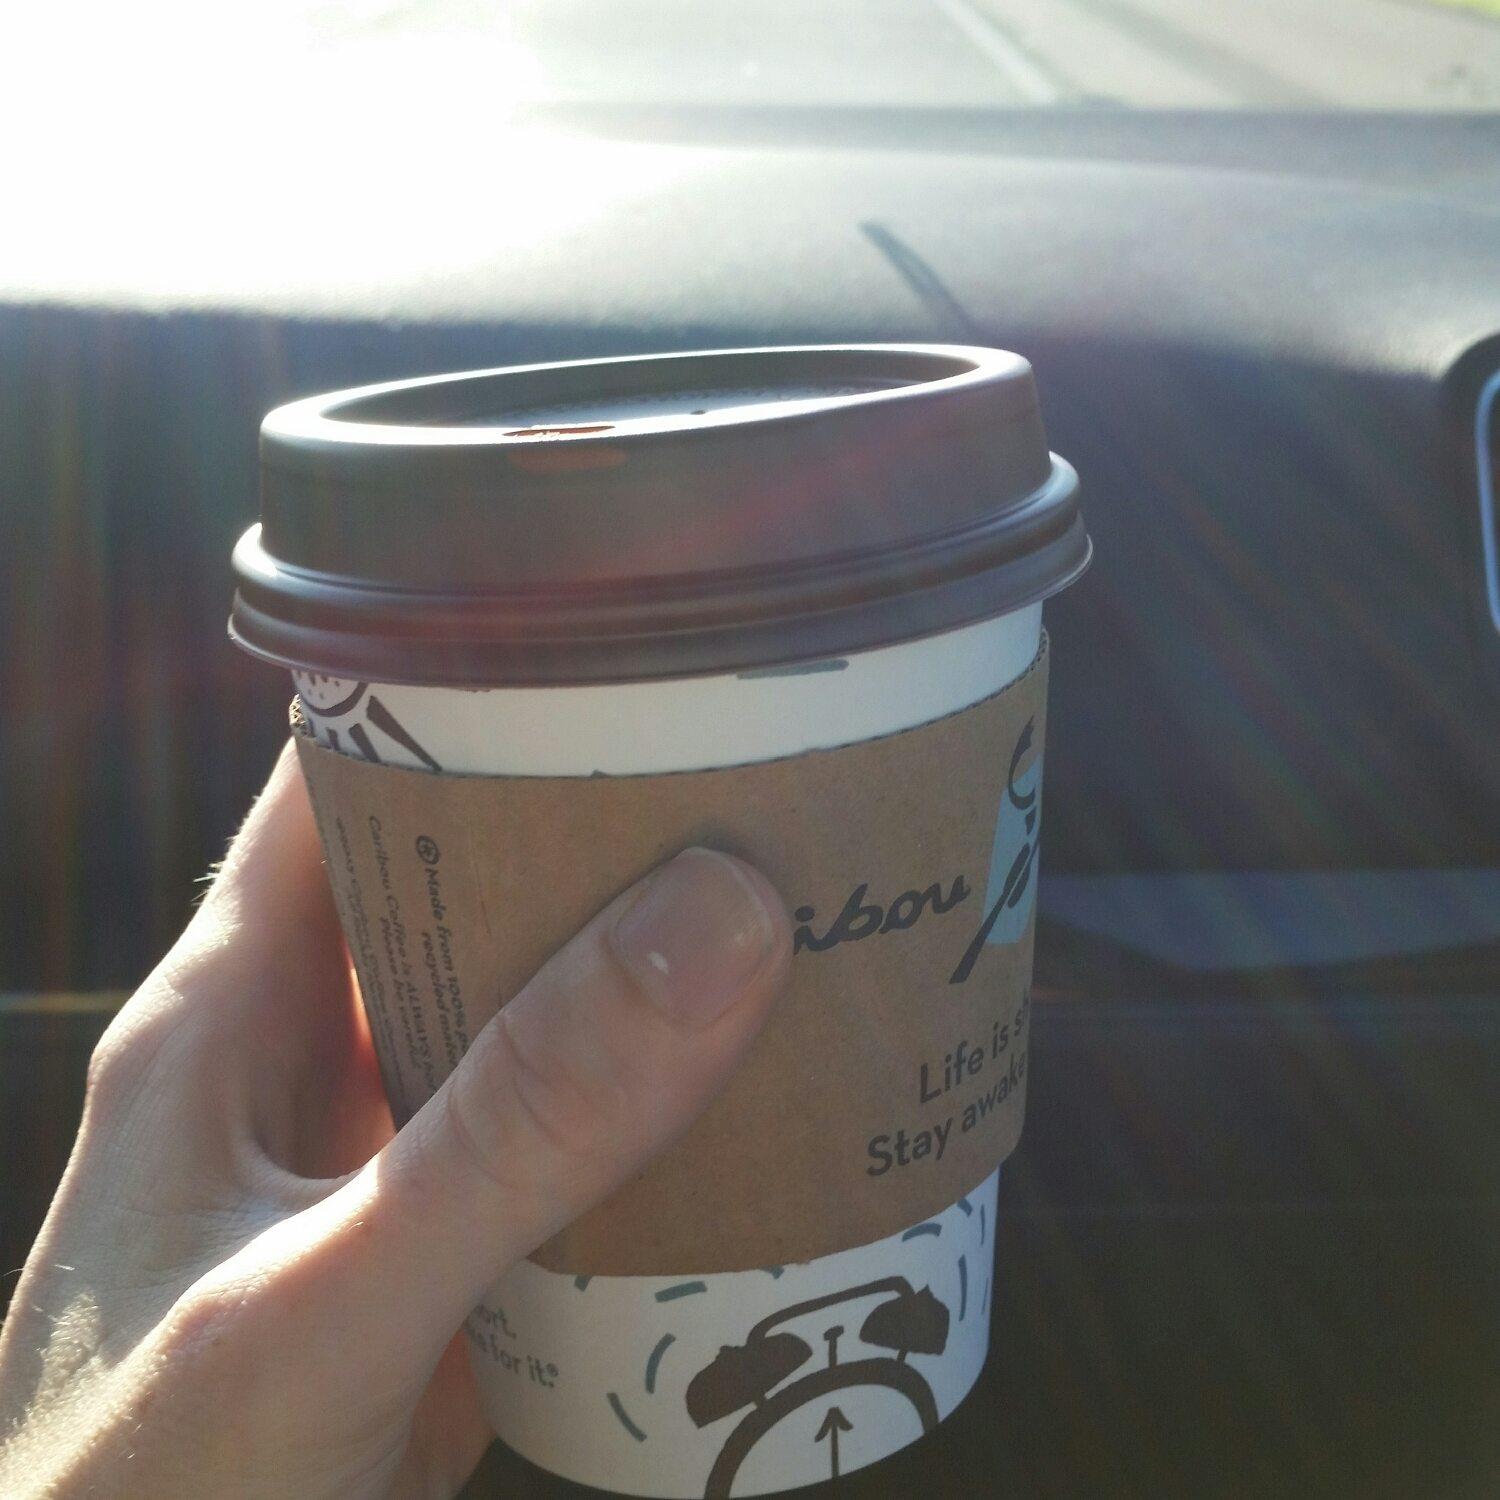 coffee to start the first day right